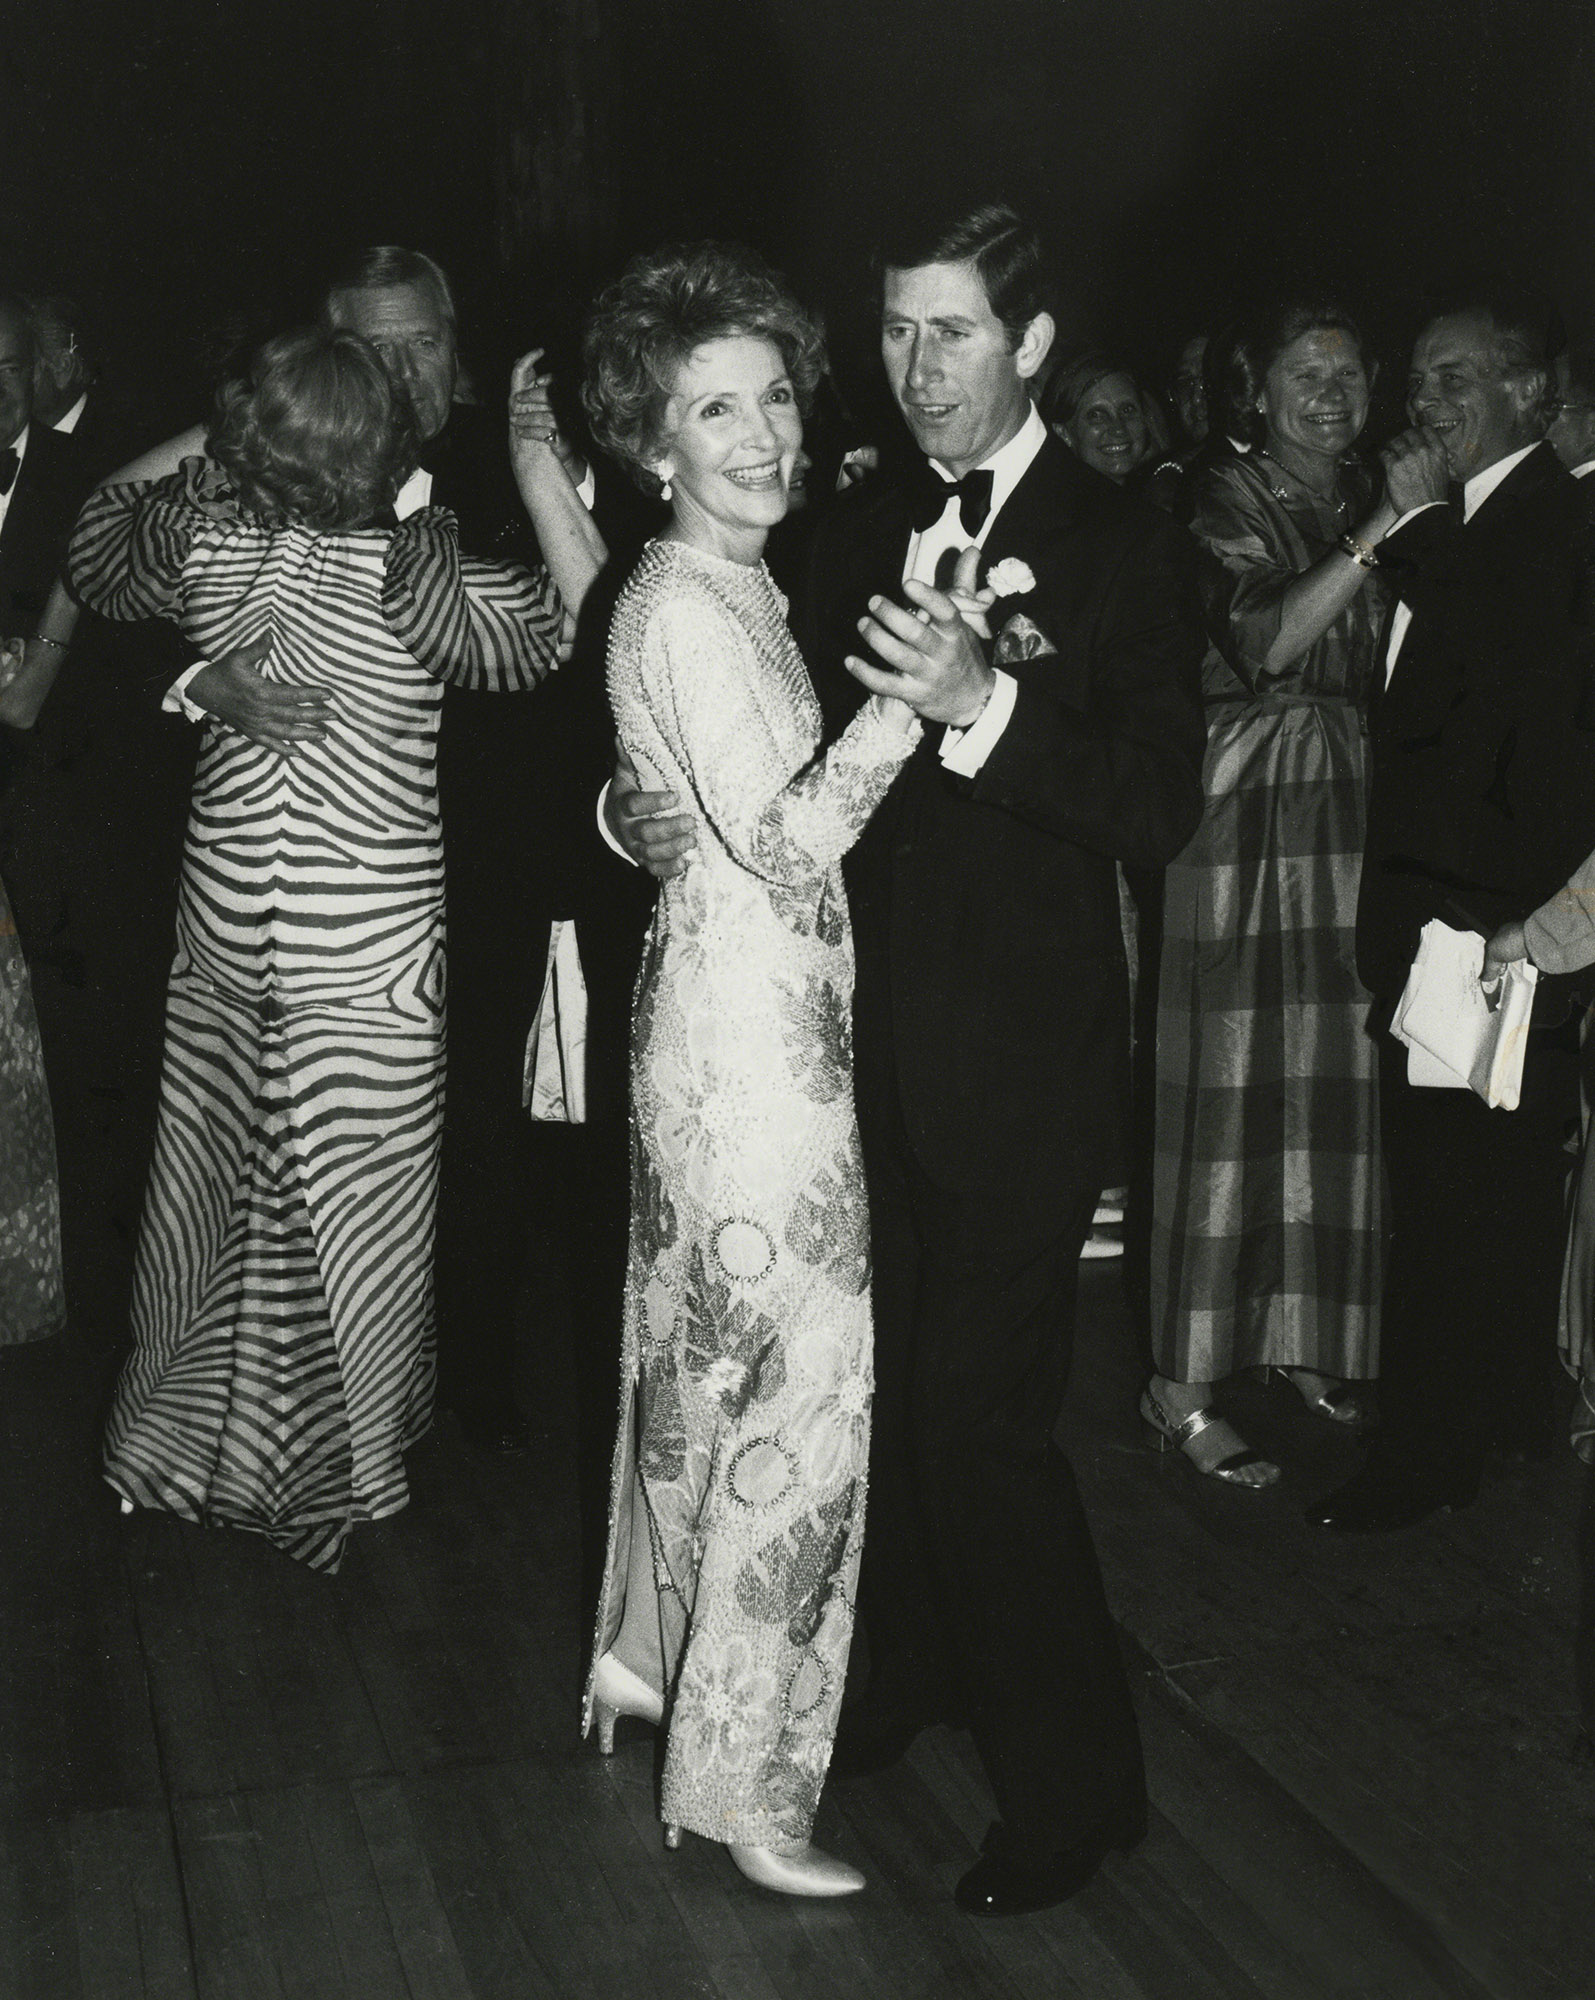 Prince Charles dances with First Lady Nancy Reagan